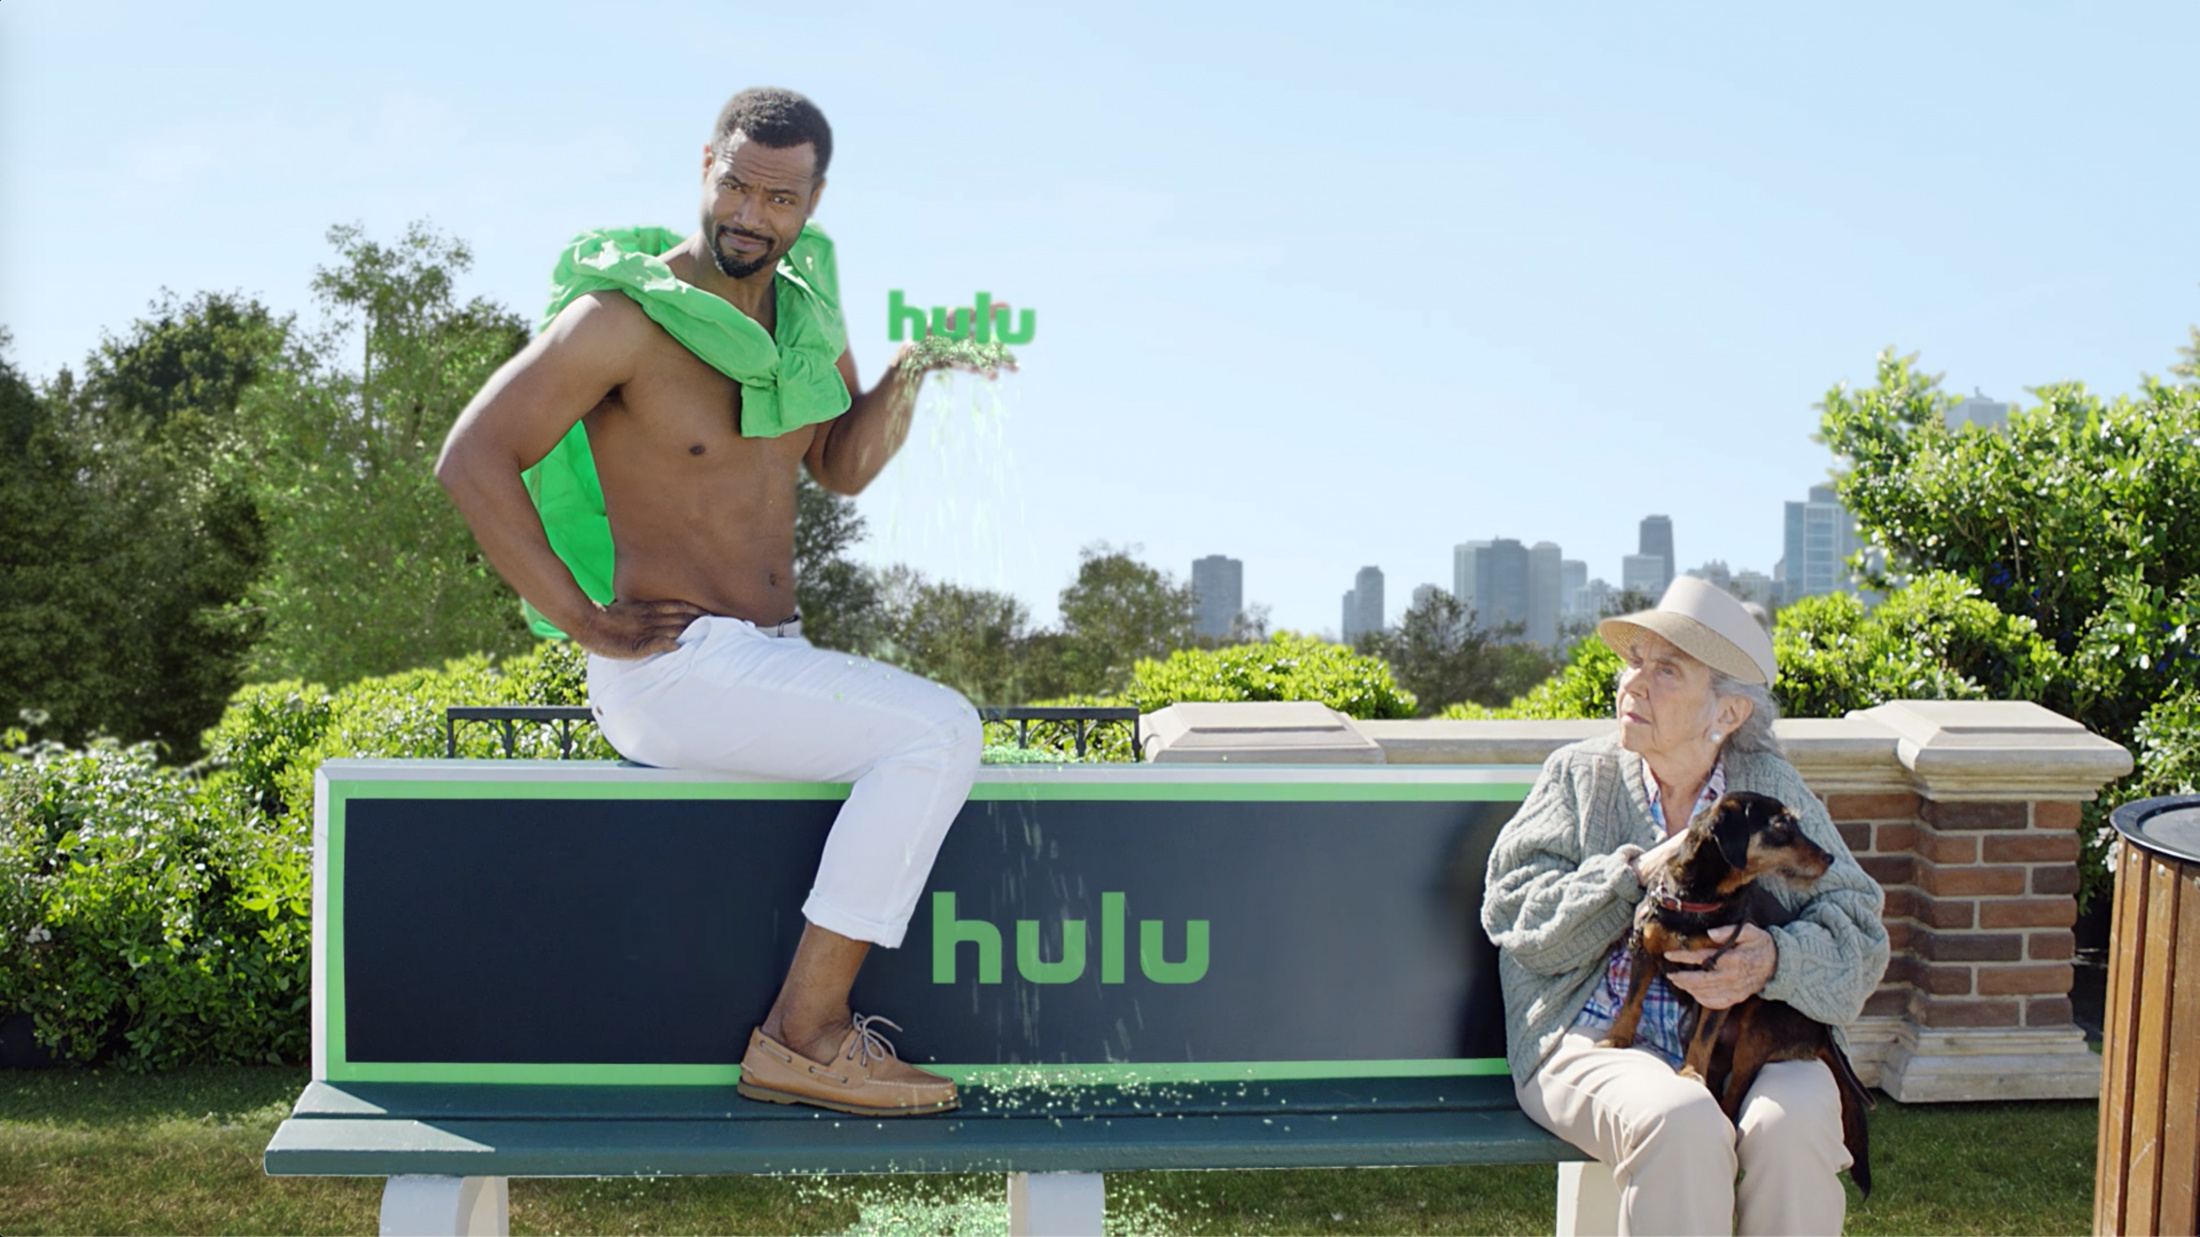 Thumbnail for Better Ruins Everything: No Ads on Hulu